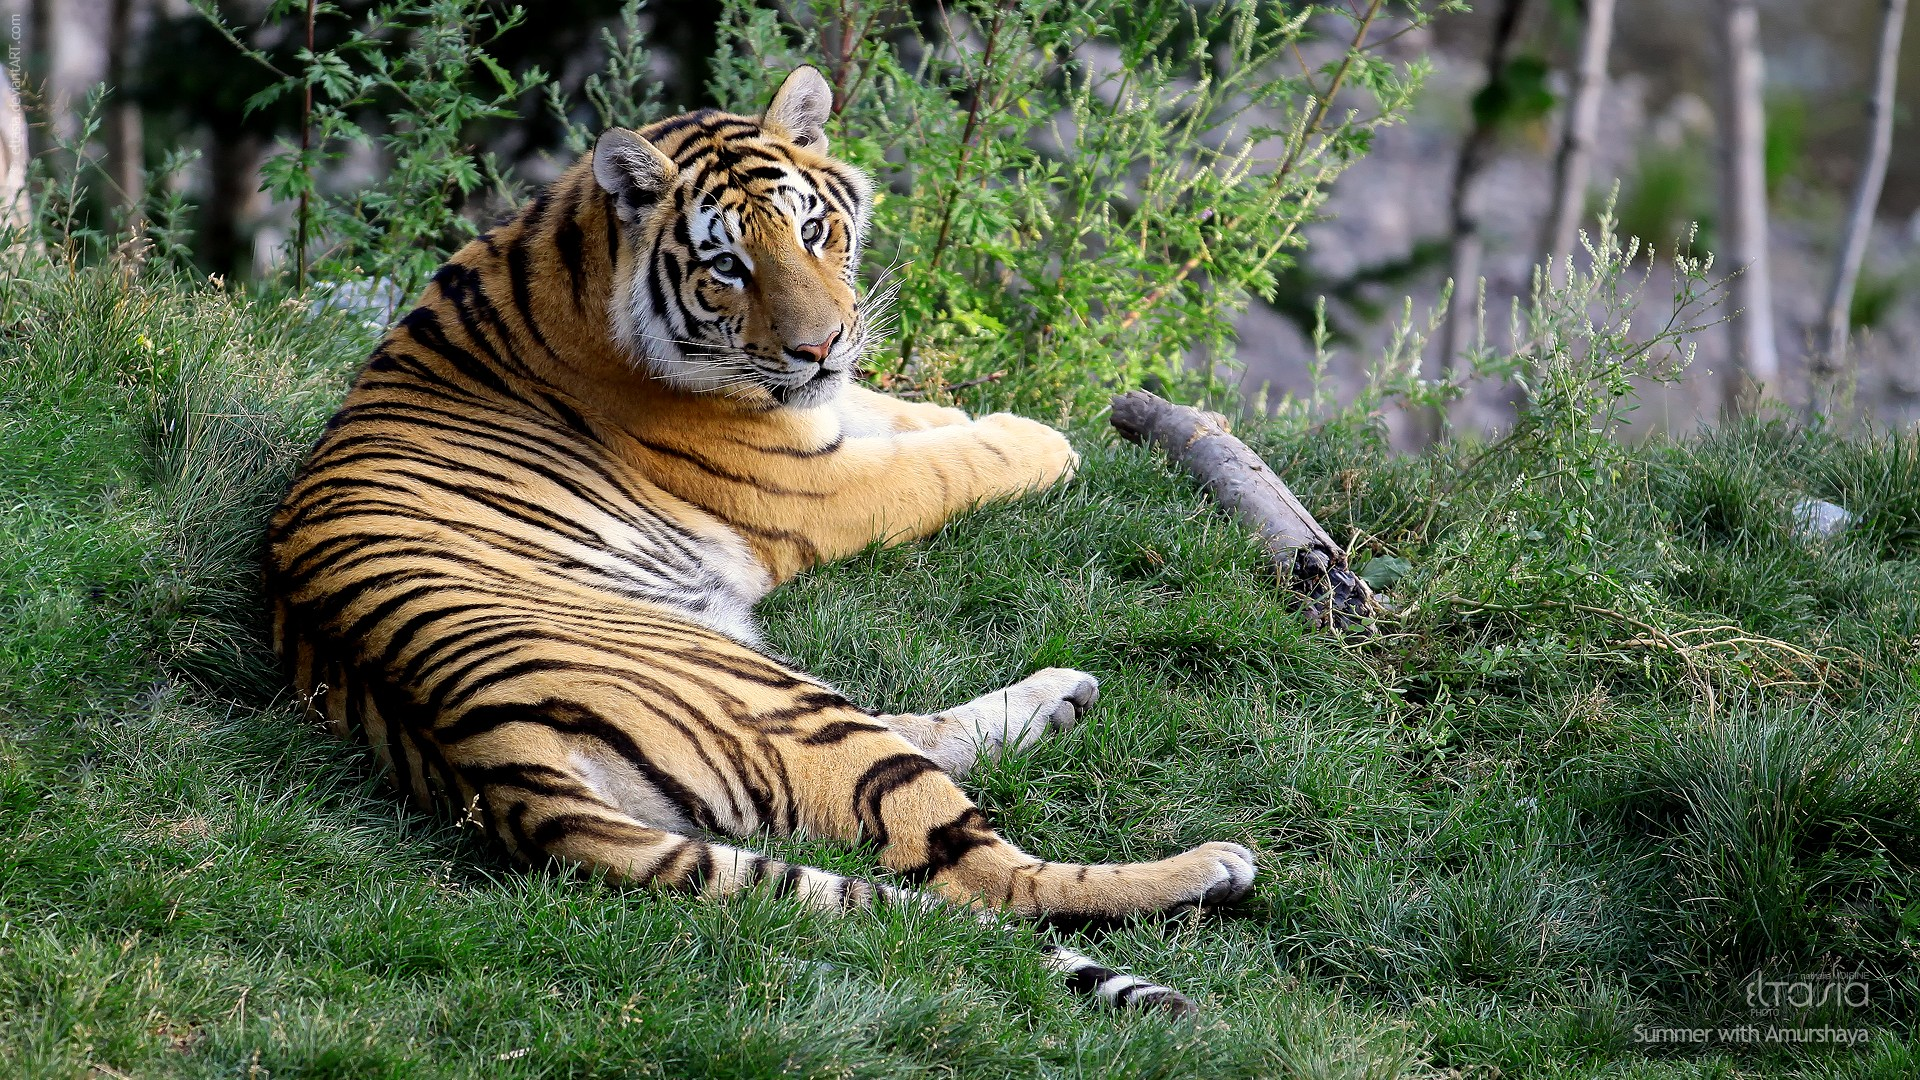 Cute 3d Wallpapers For Laptops Female Tiger Amurshaya Wallpapers Hd Wallpapers Id 10148